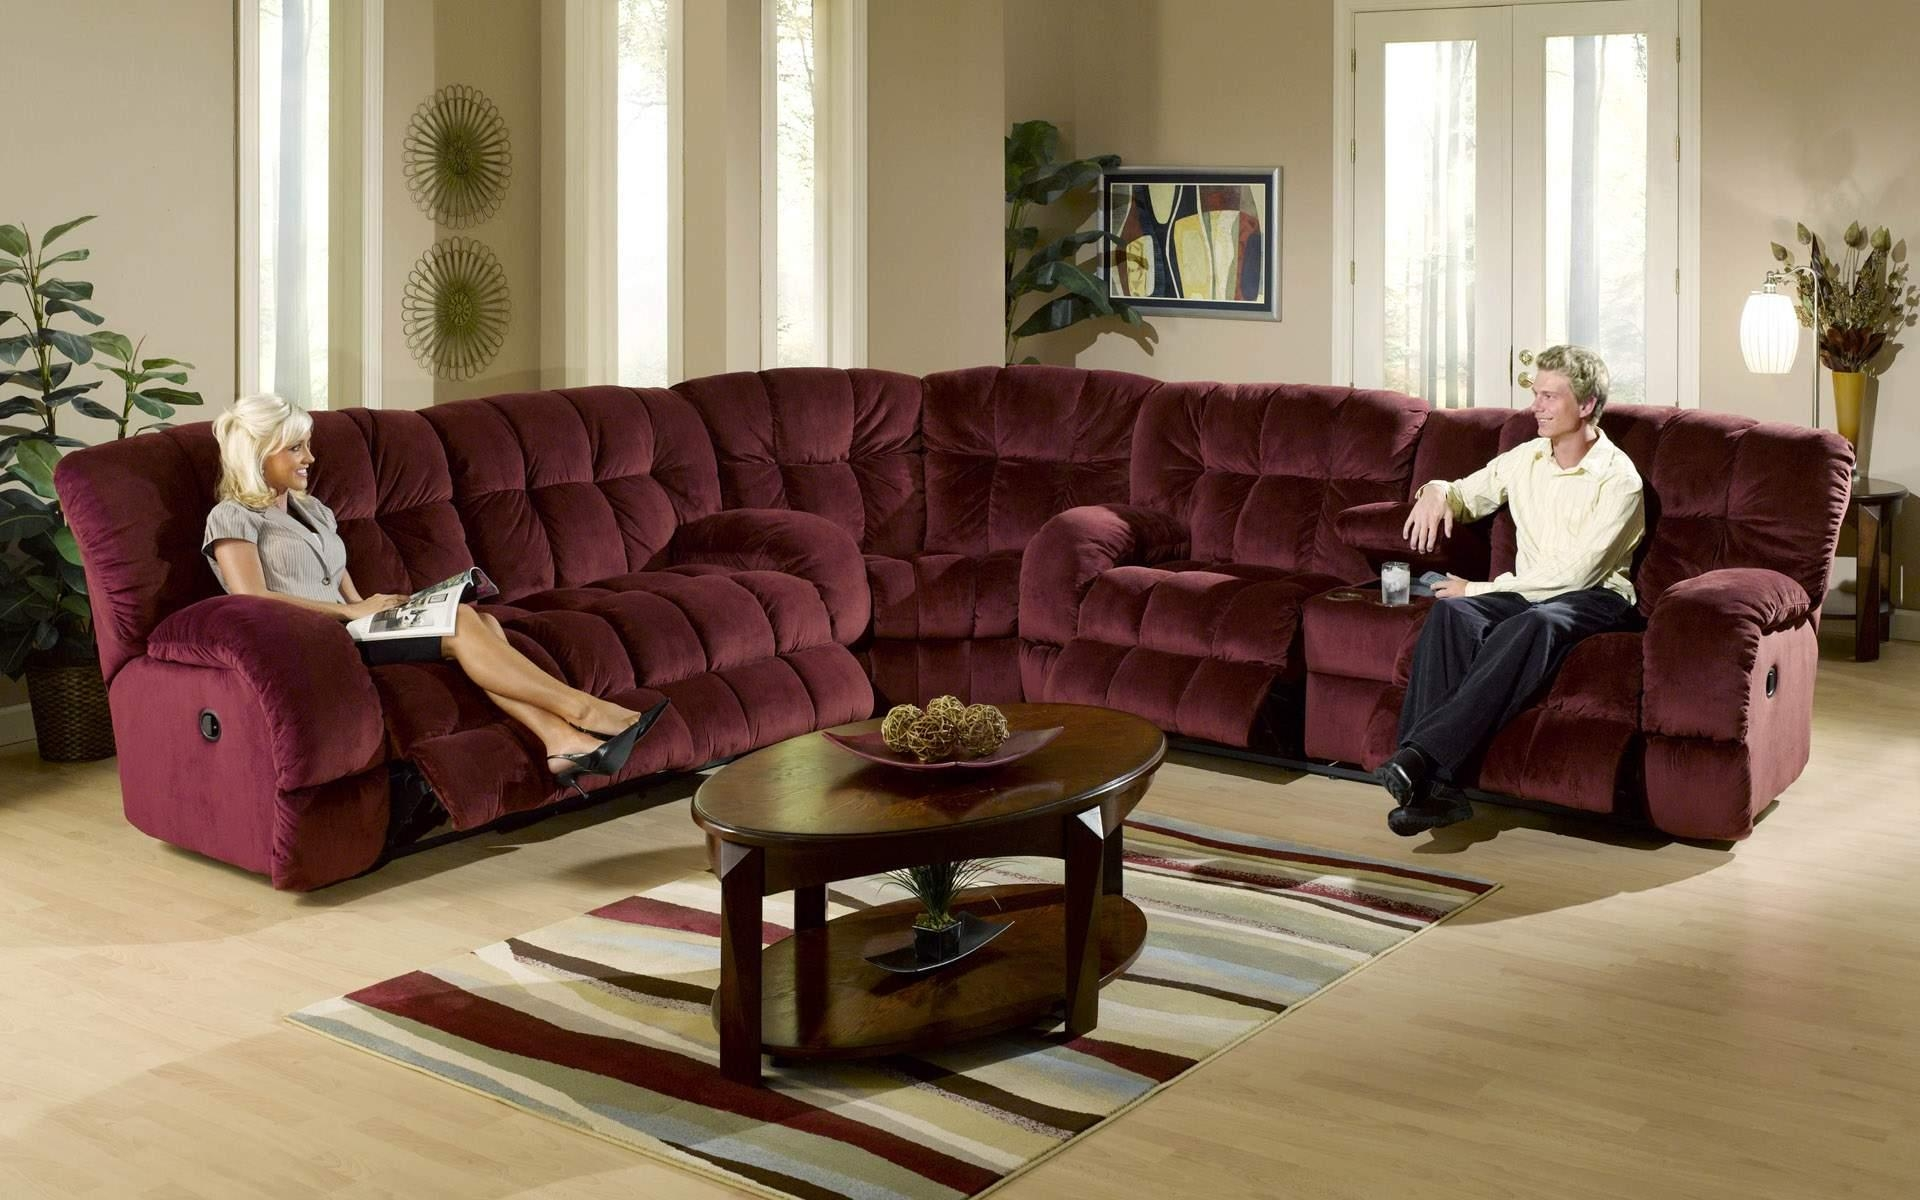 Sofas Center : Luxury High Quality Sectional Sofa With Additional Within High Quality Leather Sectional (View 16 of 20)